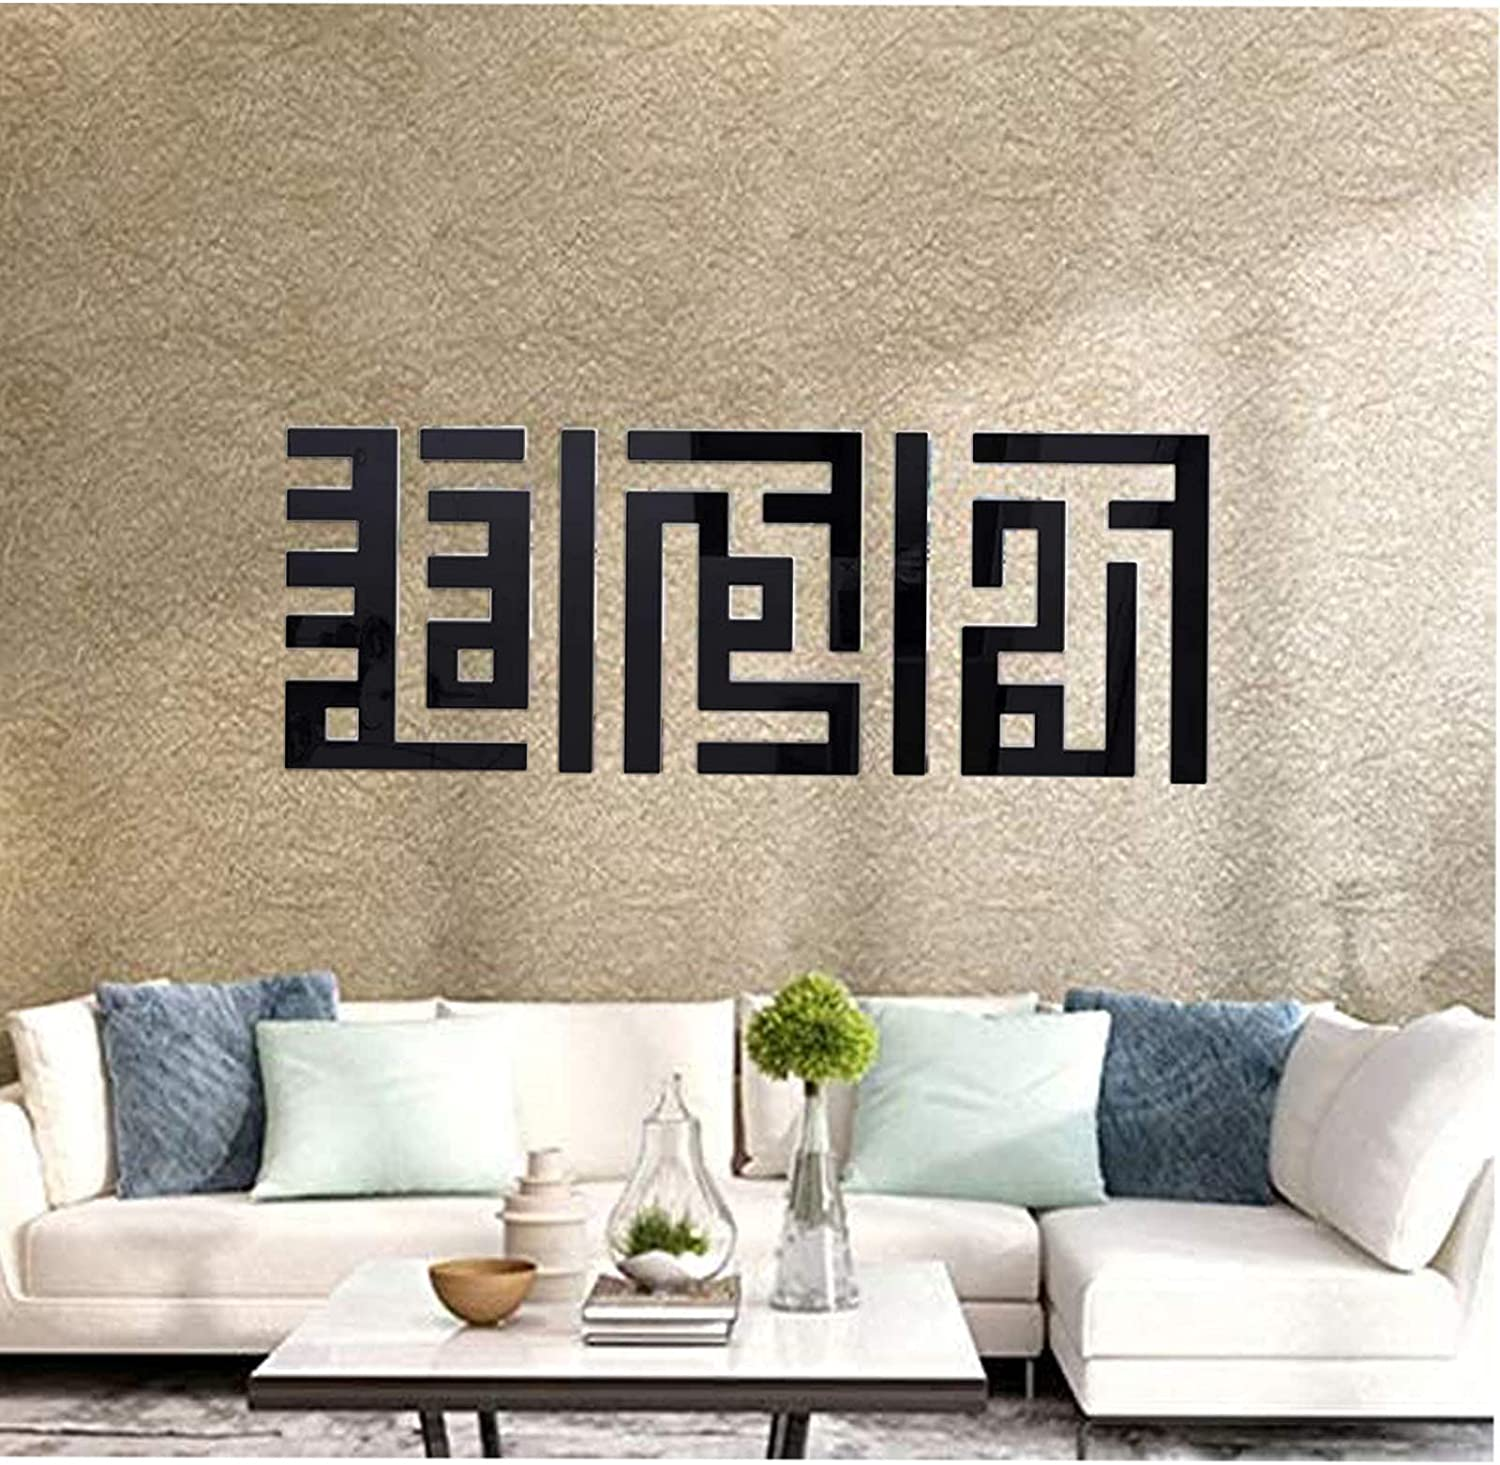 WELLSTRONG 3D Wall Mirror Stickers Acrylic Removabl Max 52% OFF Style Save money